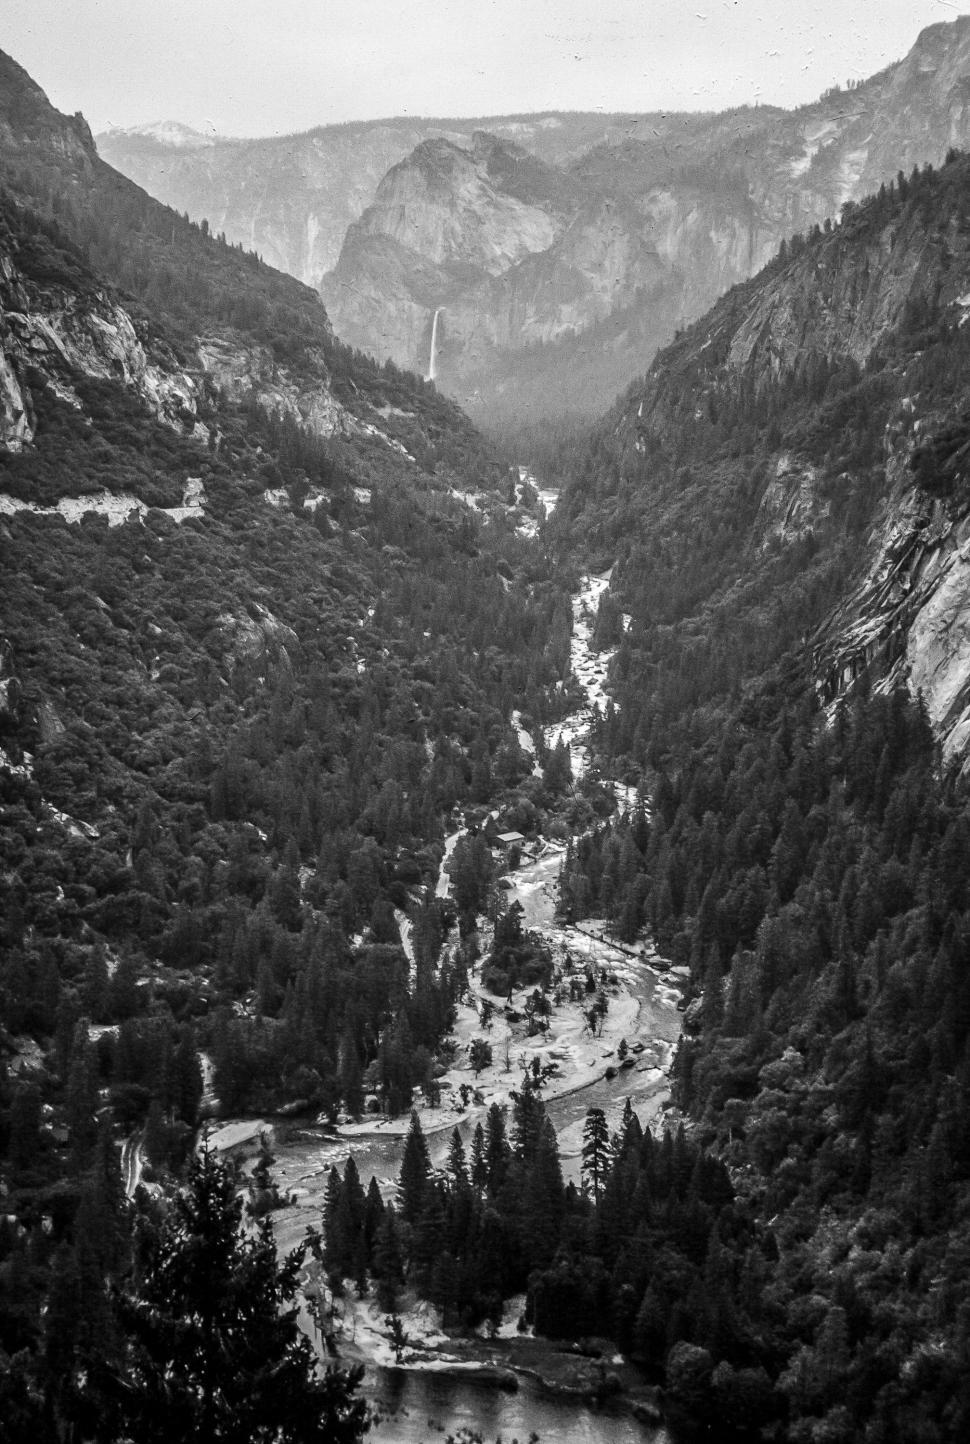 Download Free Stock Photo of Aerial View of Yosemite Falls - Black and white